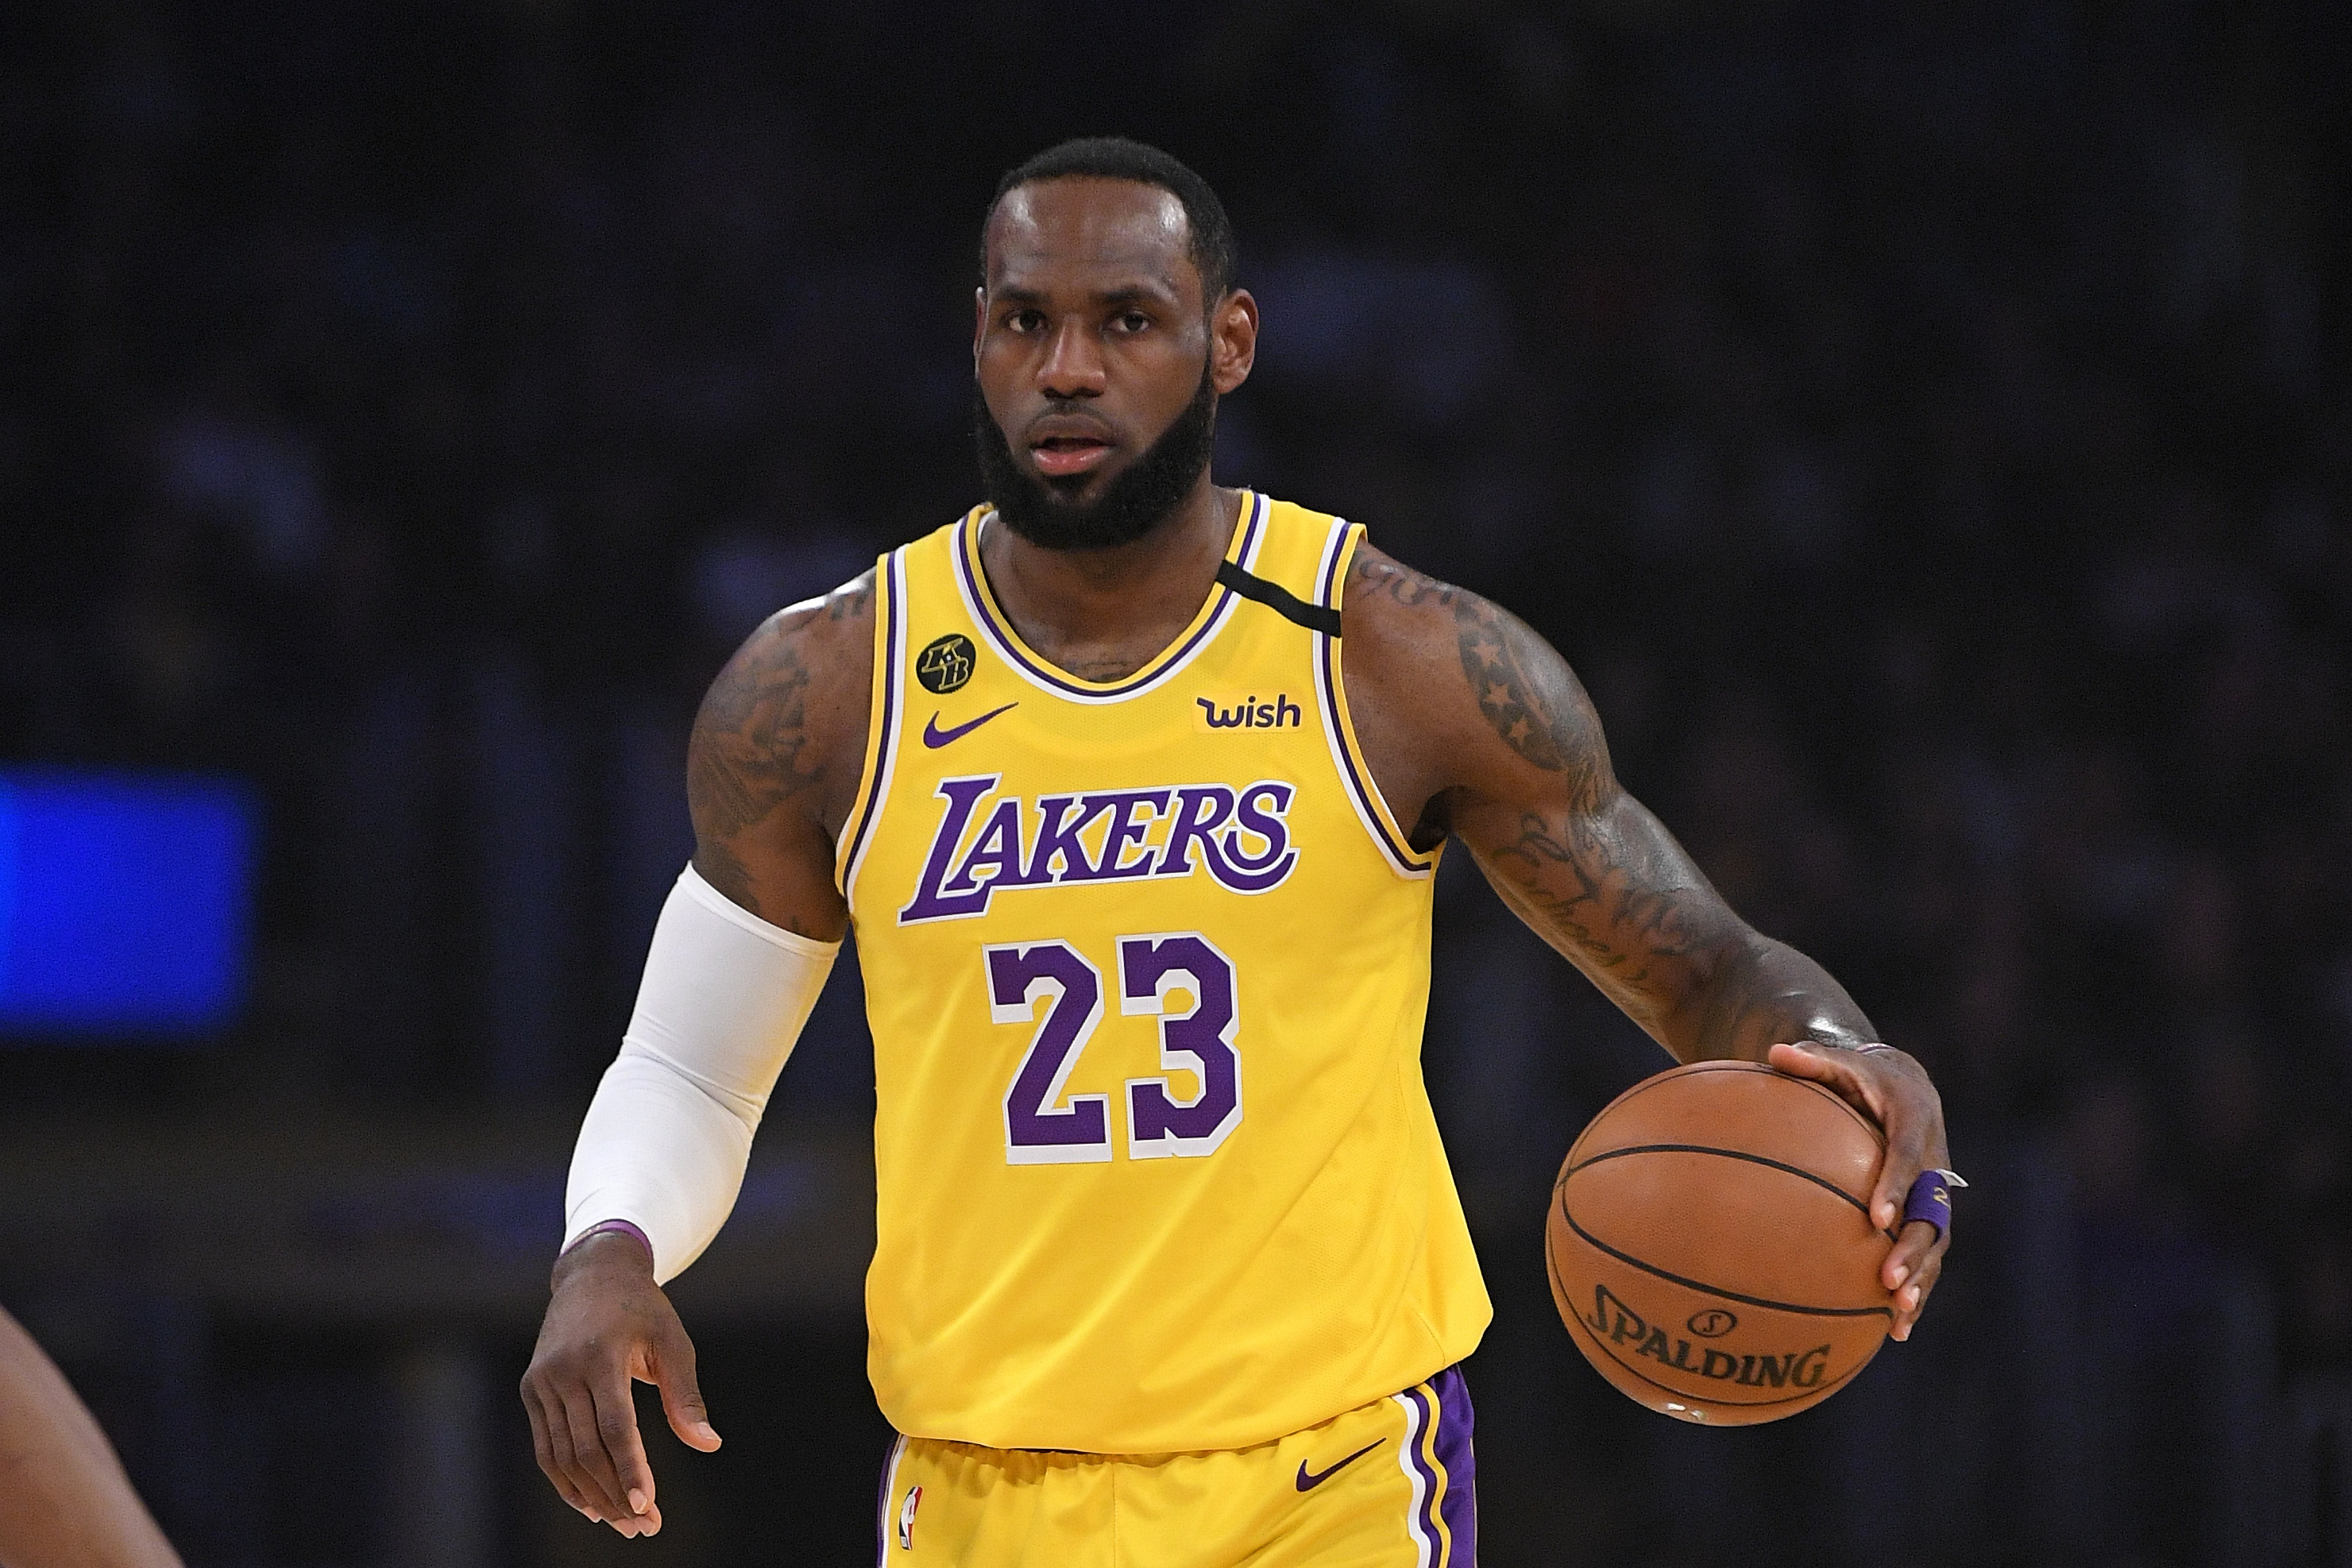 Los Angeles Lakers forward LeBron James dribbles during the first half of an NBA basketball game against the Philadelphia 76ers Tuesday, March 3, 2020, in Los Angeles. (AP Photo/Mark J. Terrill)